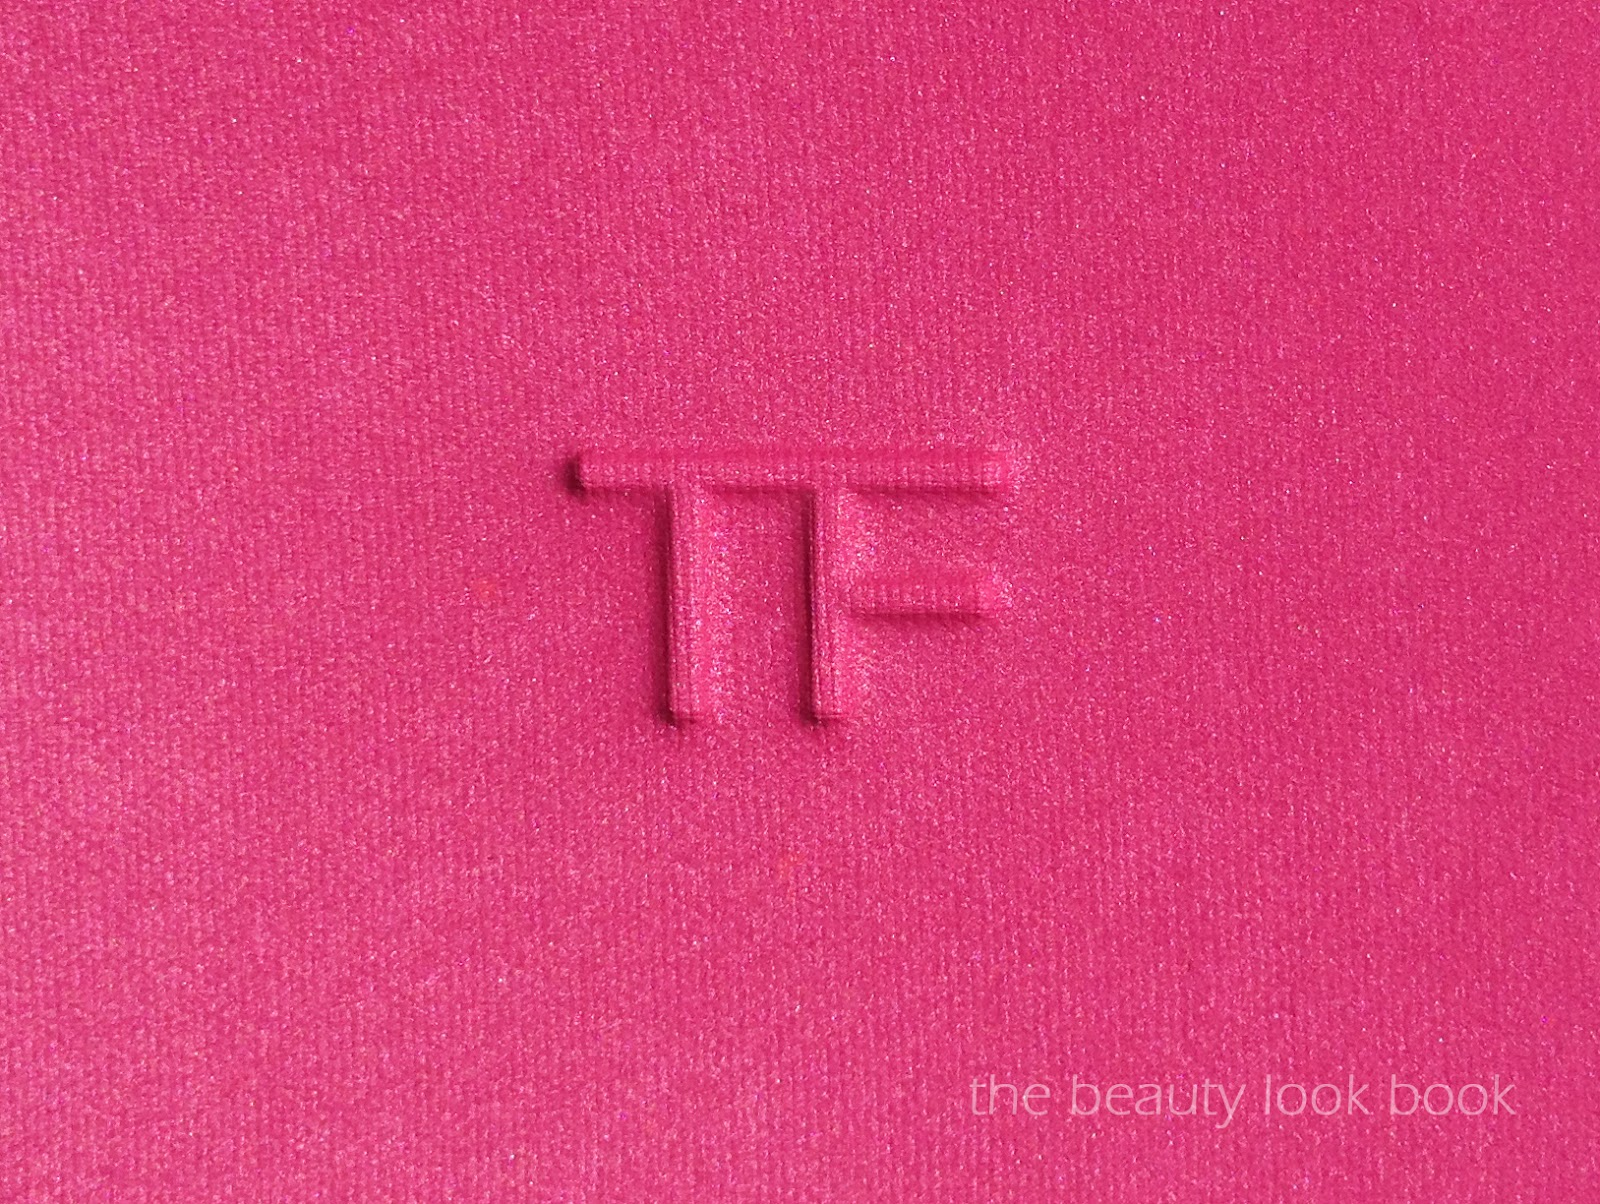 Tom Ford Fall 2012 Blush: Narcissist | The Beauty Look Book